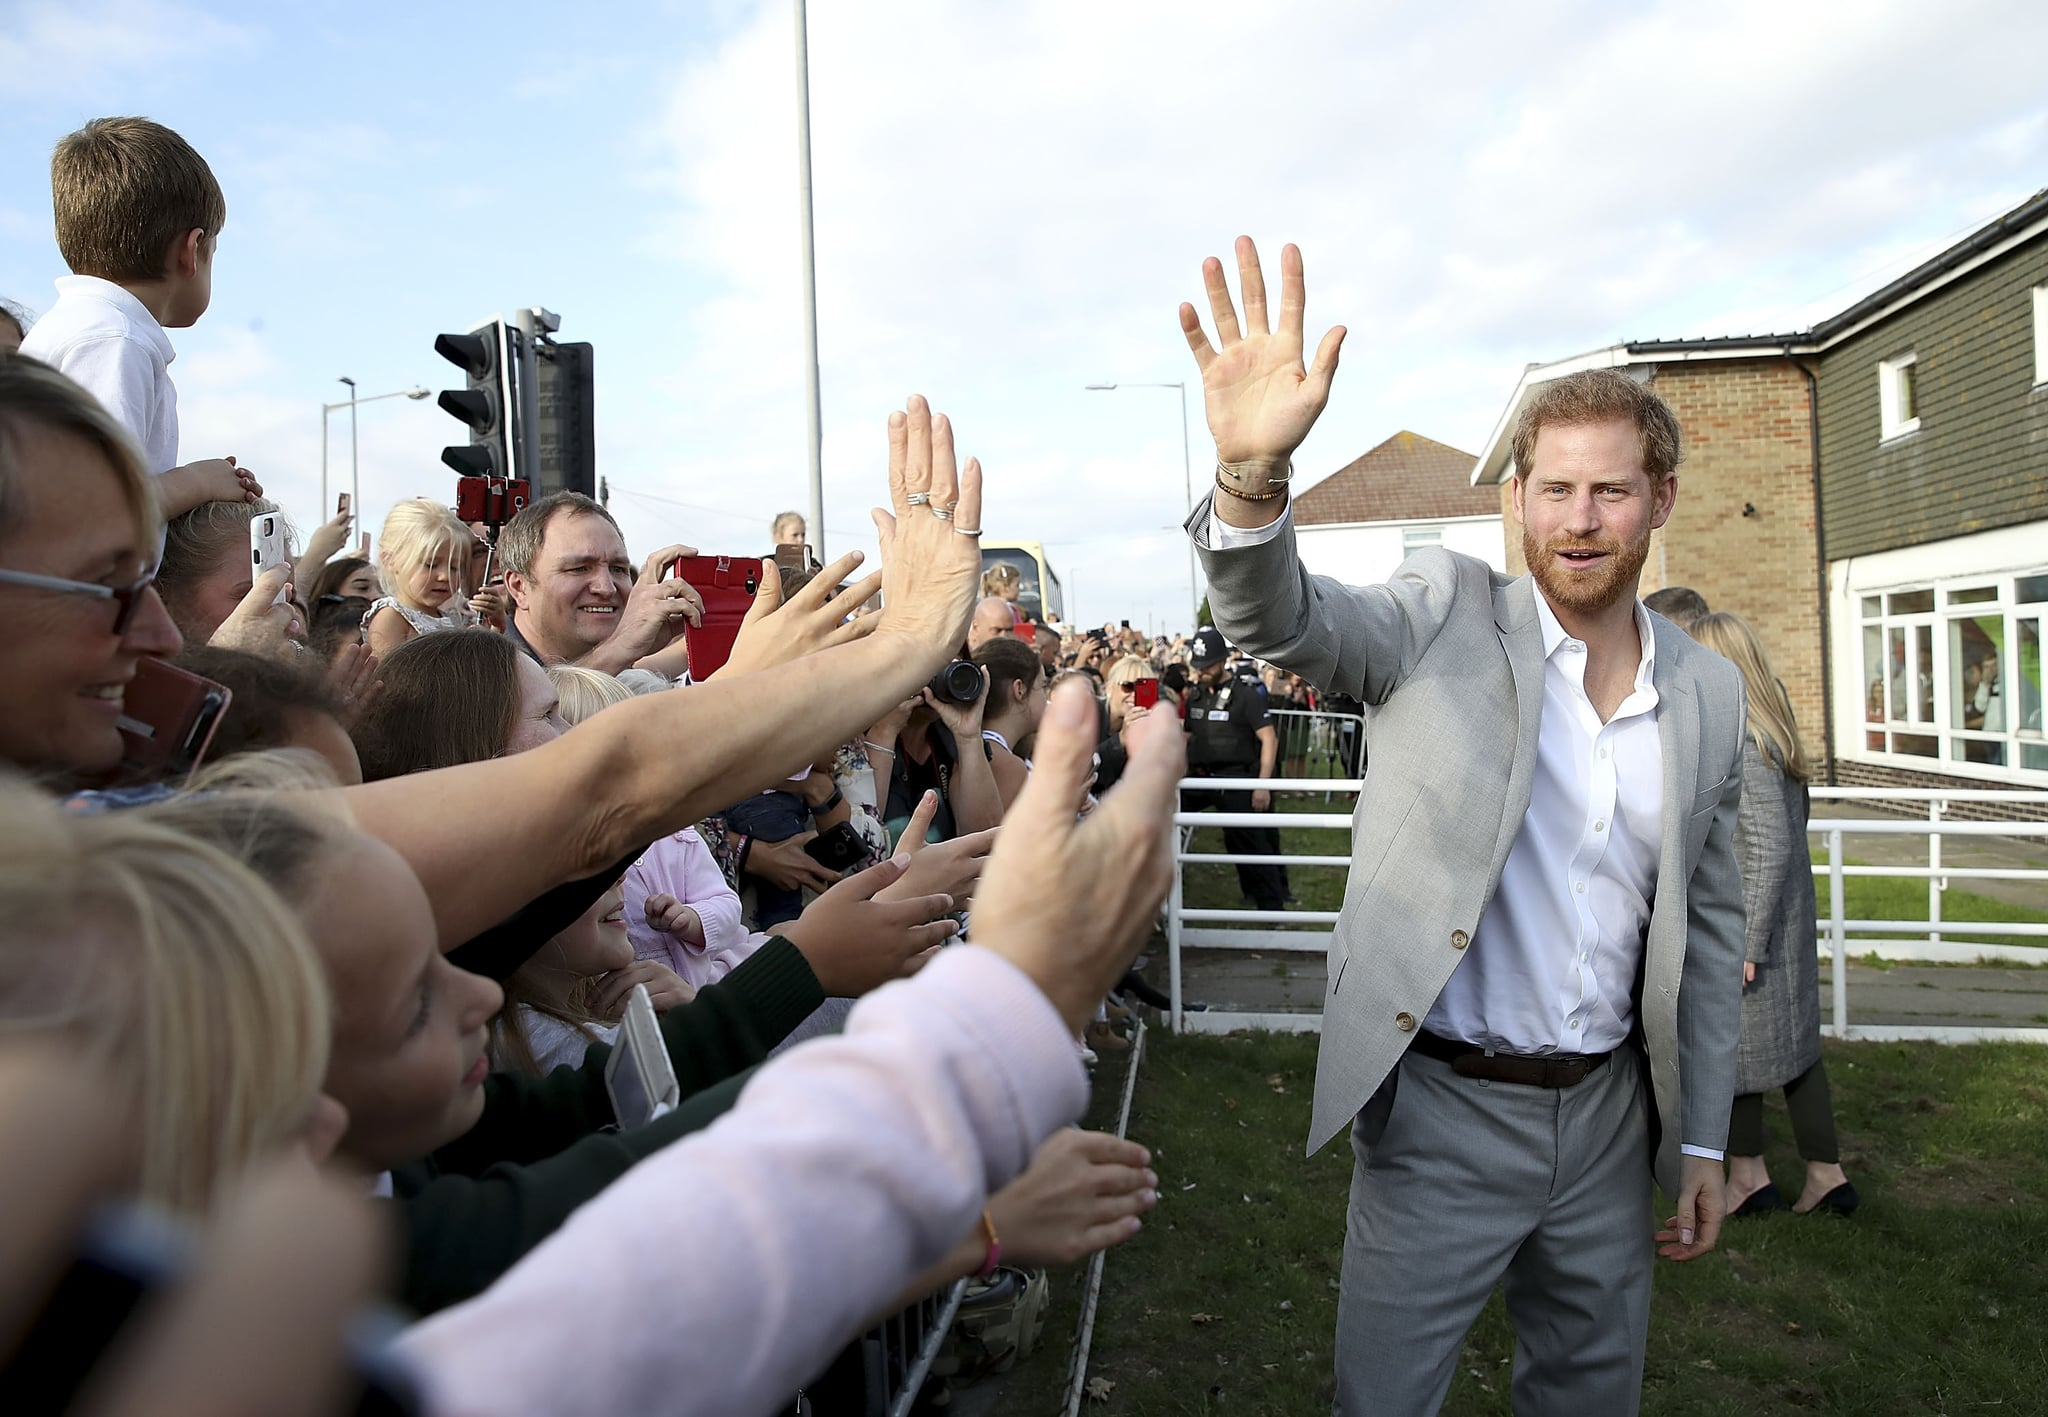 PEACEHAVEN, UNITED KINGDOM - OCTOBER 03:  Prince Harry, Duke of Sussex waves to locals on an official visit to the Joff Youth Centre in Peacehaven, Sussex on October 3, 2018 in Peacehaven, United Kingdom. The Duke and Duchess married on May 19th 2018 in Windsor and were conferred The Duke & Duchess of Sussex by The Queen.  (Photo by Chris Jackson/Getty Images)